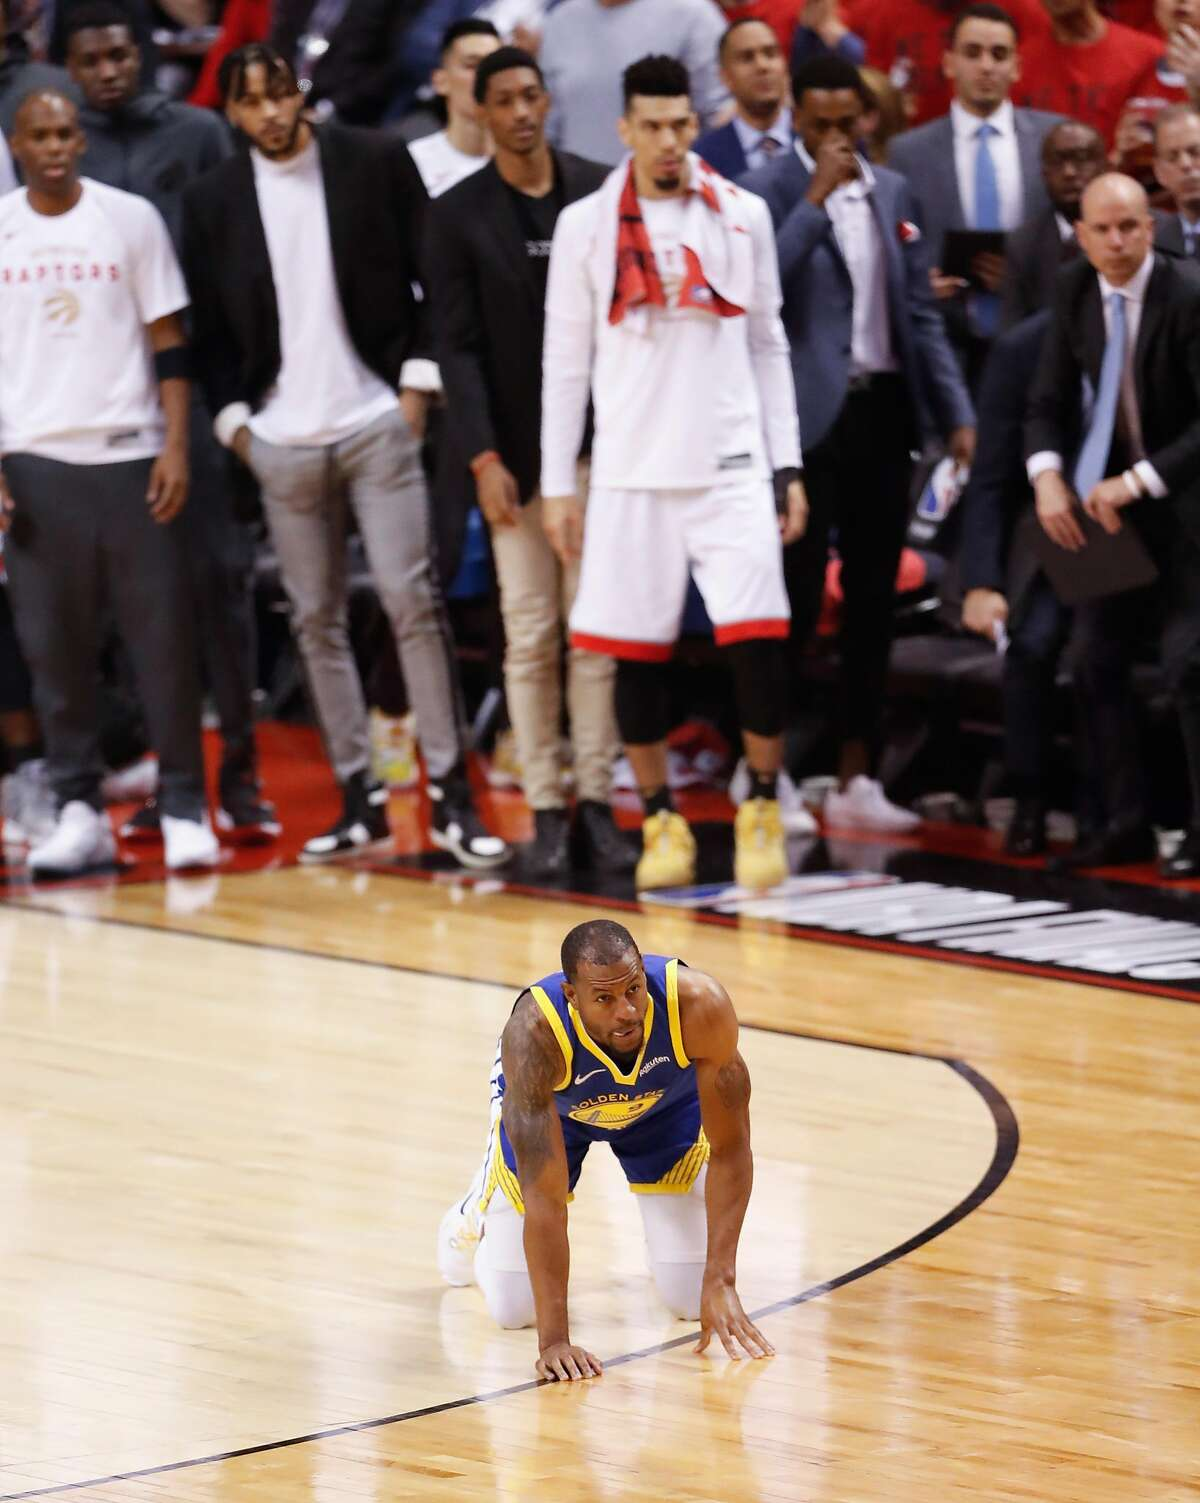 Golden State Warriors' Andre Iguodala is seen down on the floor in the second quarter during game 2 of the NBA Finals between the Golden State Warriors and the Toronto Raptors at Scotiabank Arena on Sunday, June 2, 2019 in Toronto, Ontario, Canada.